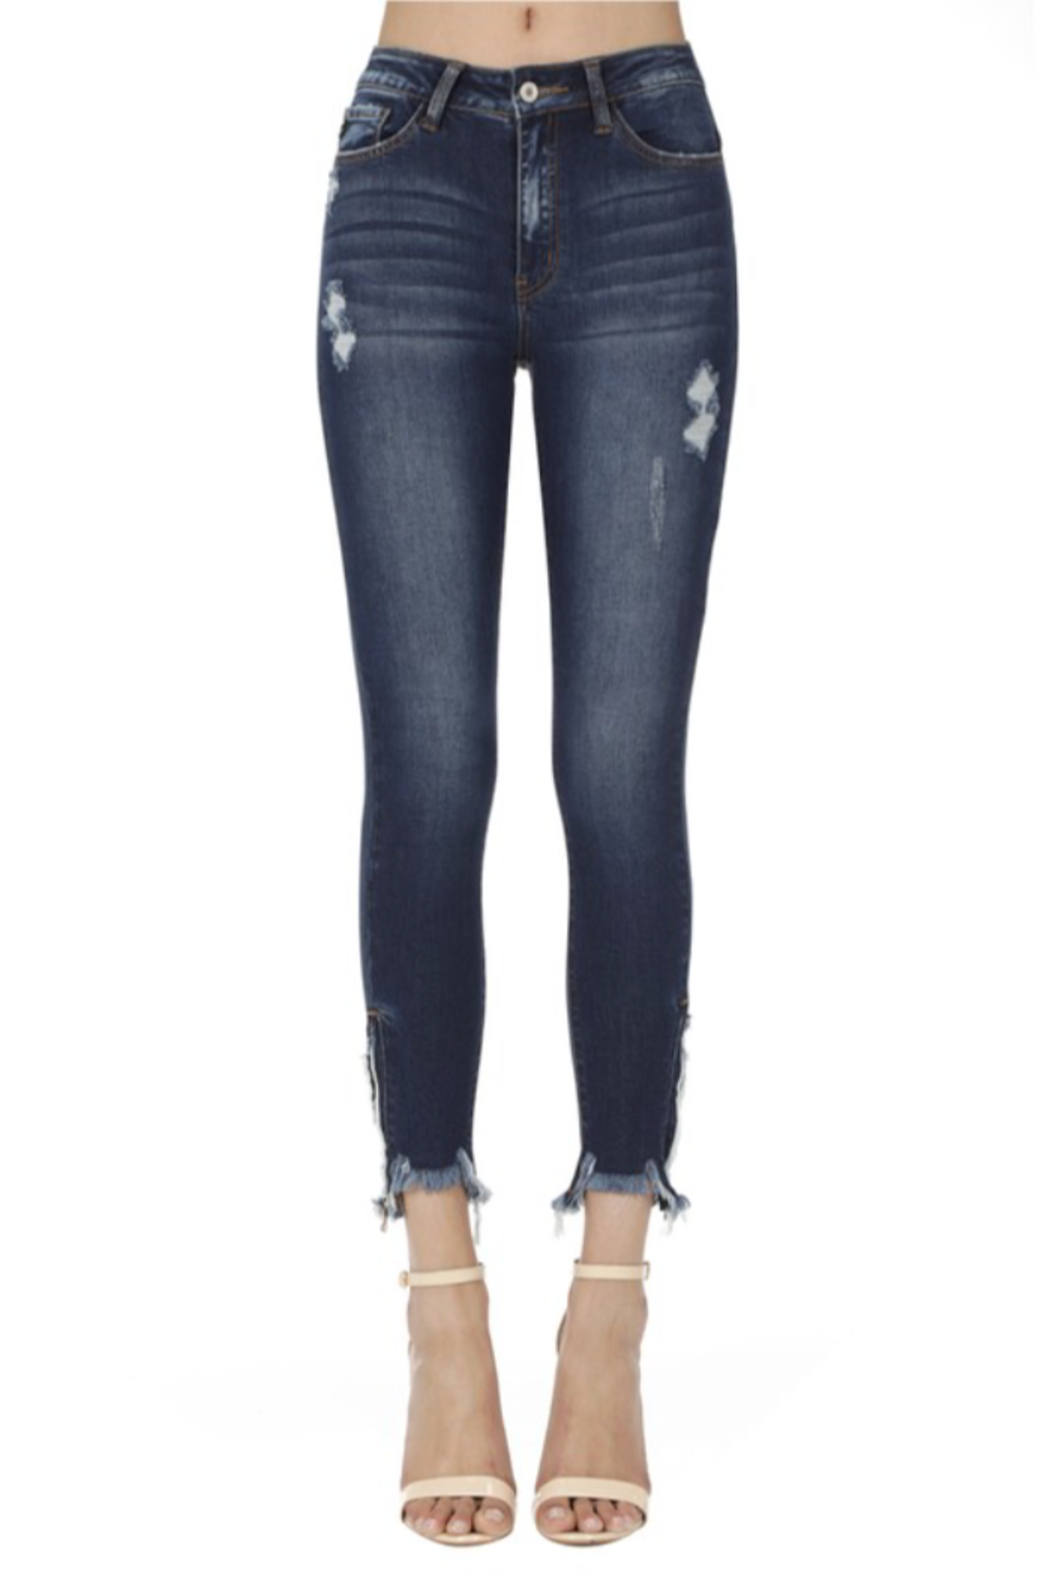 KanCan Bottom Zipper Jeans - Main Image